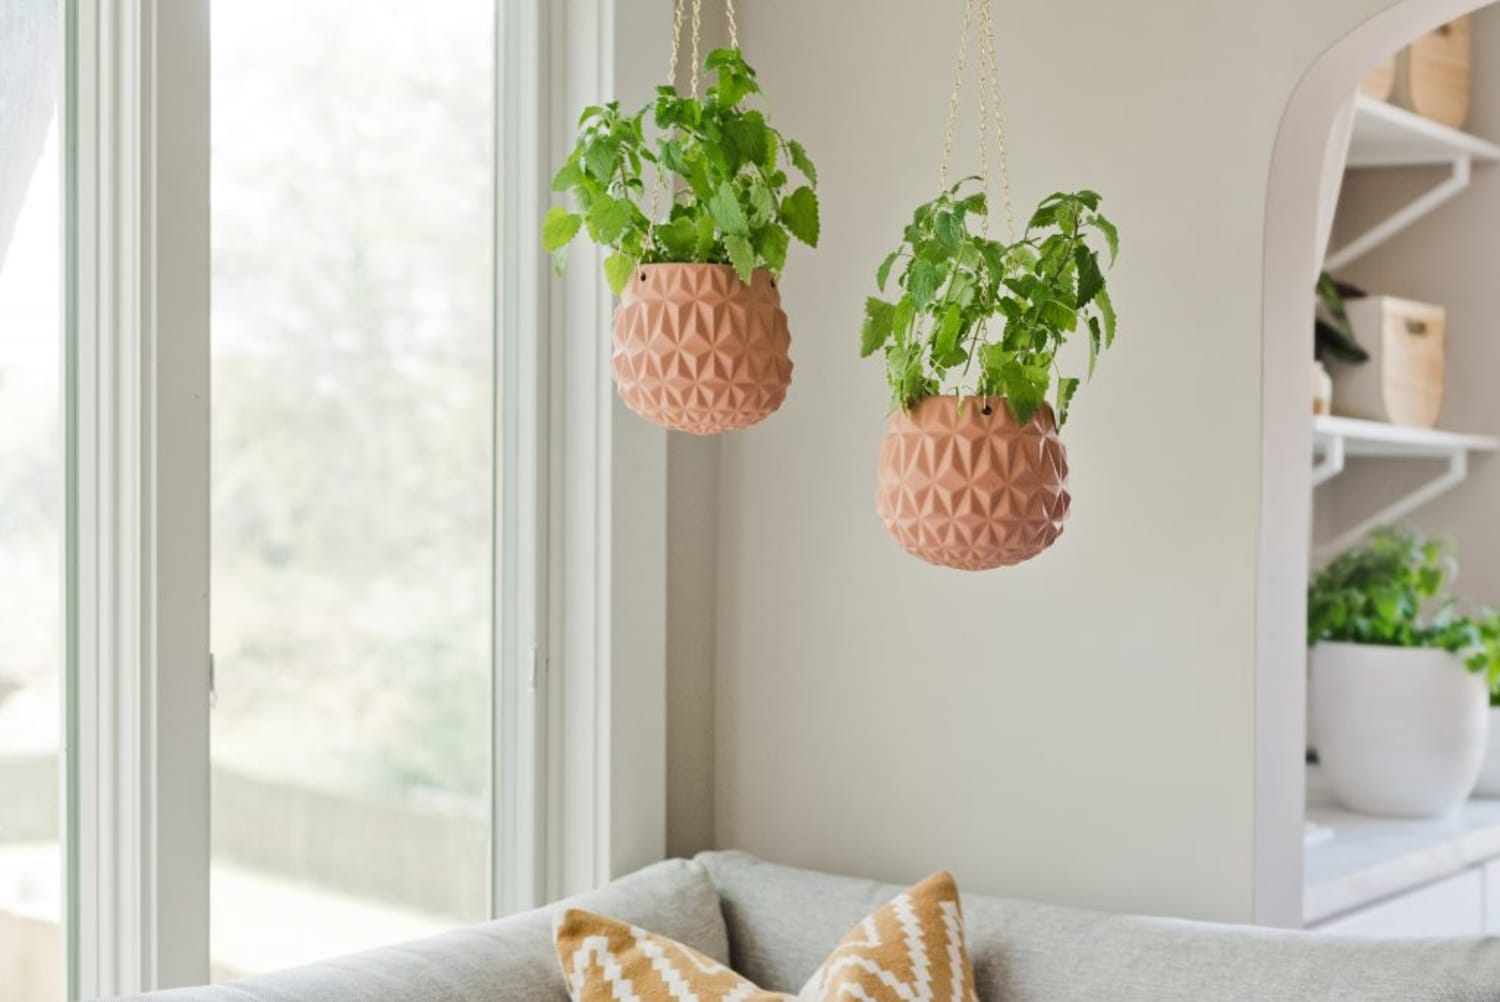 Catnip Fever: The Dos and Don'ts of Growing Catnip Indoors